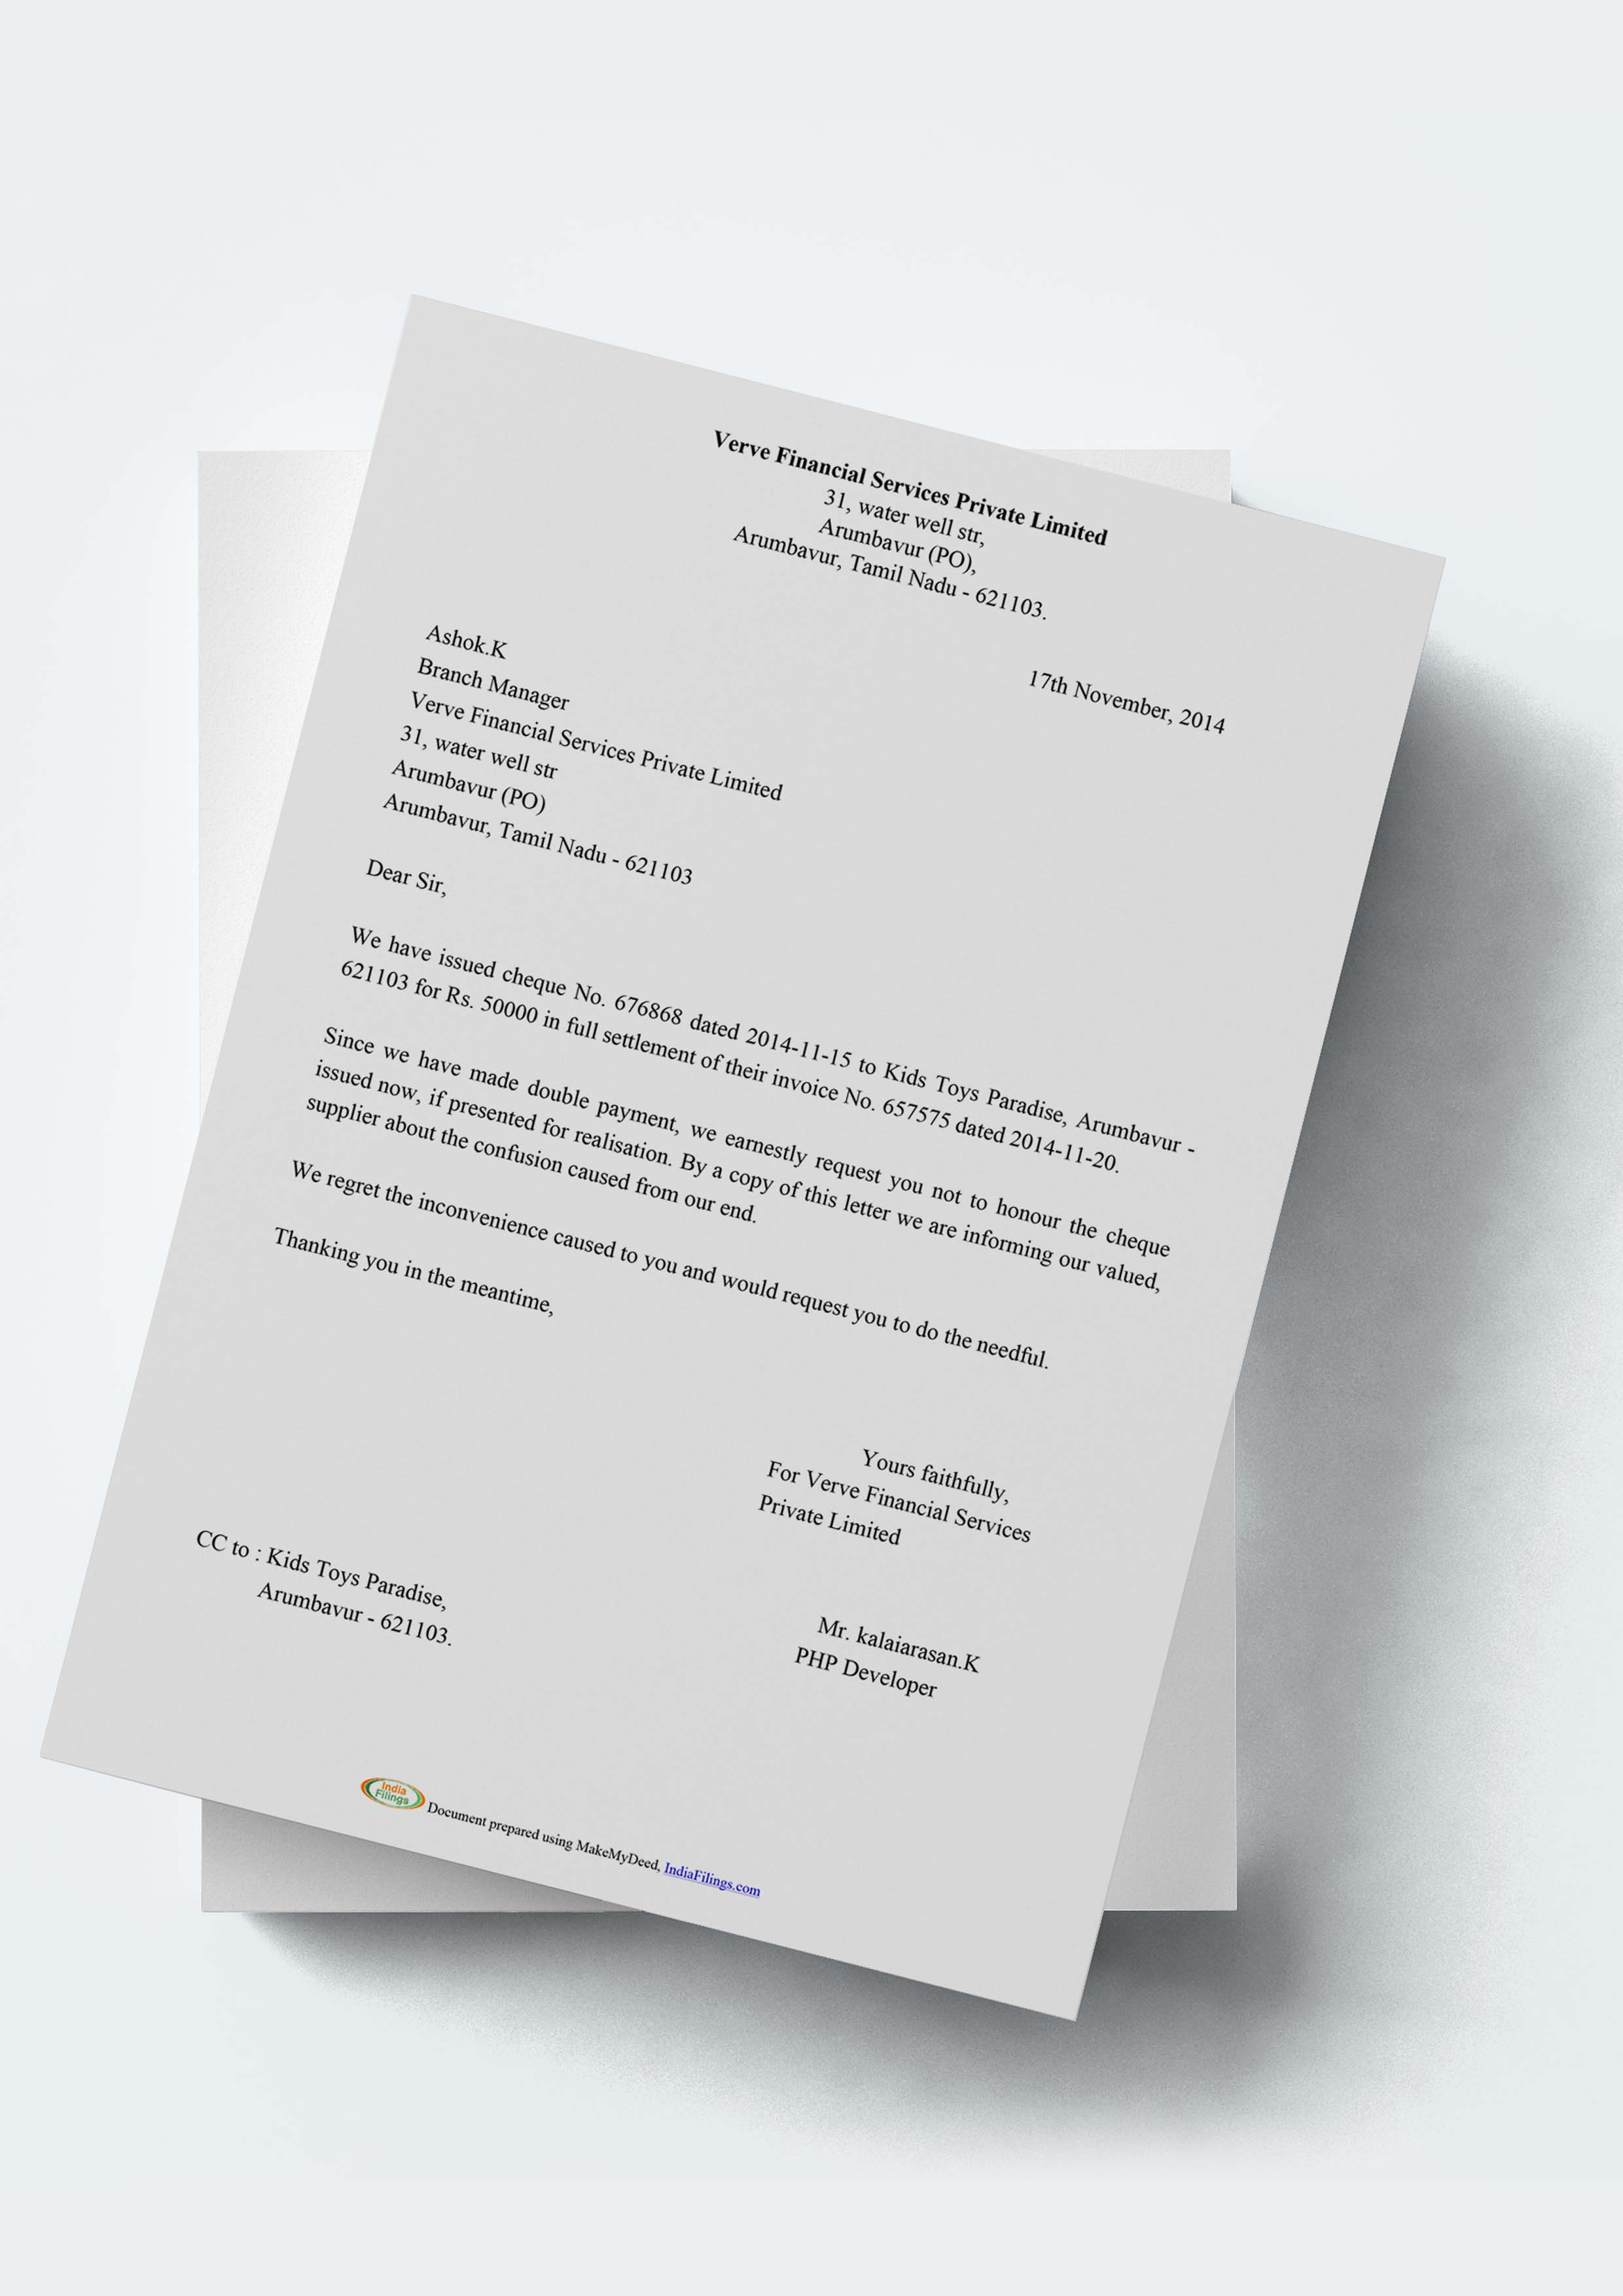 Cheque Stop Payment Letter Format and